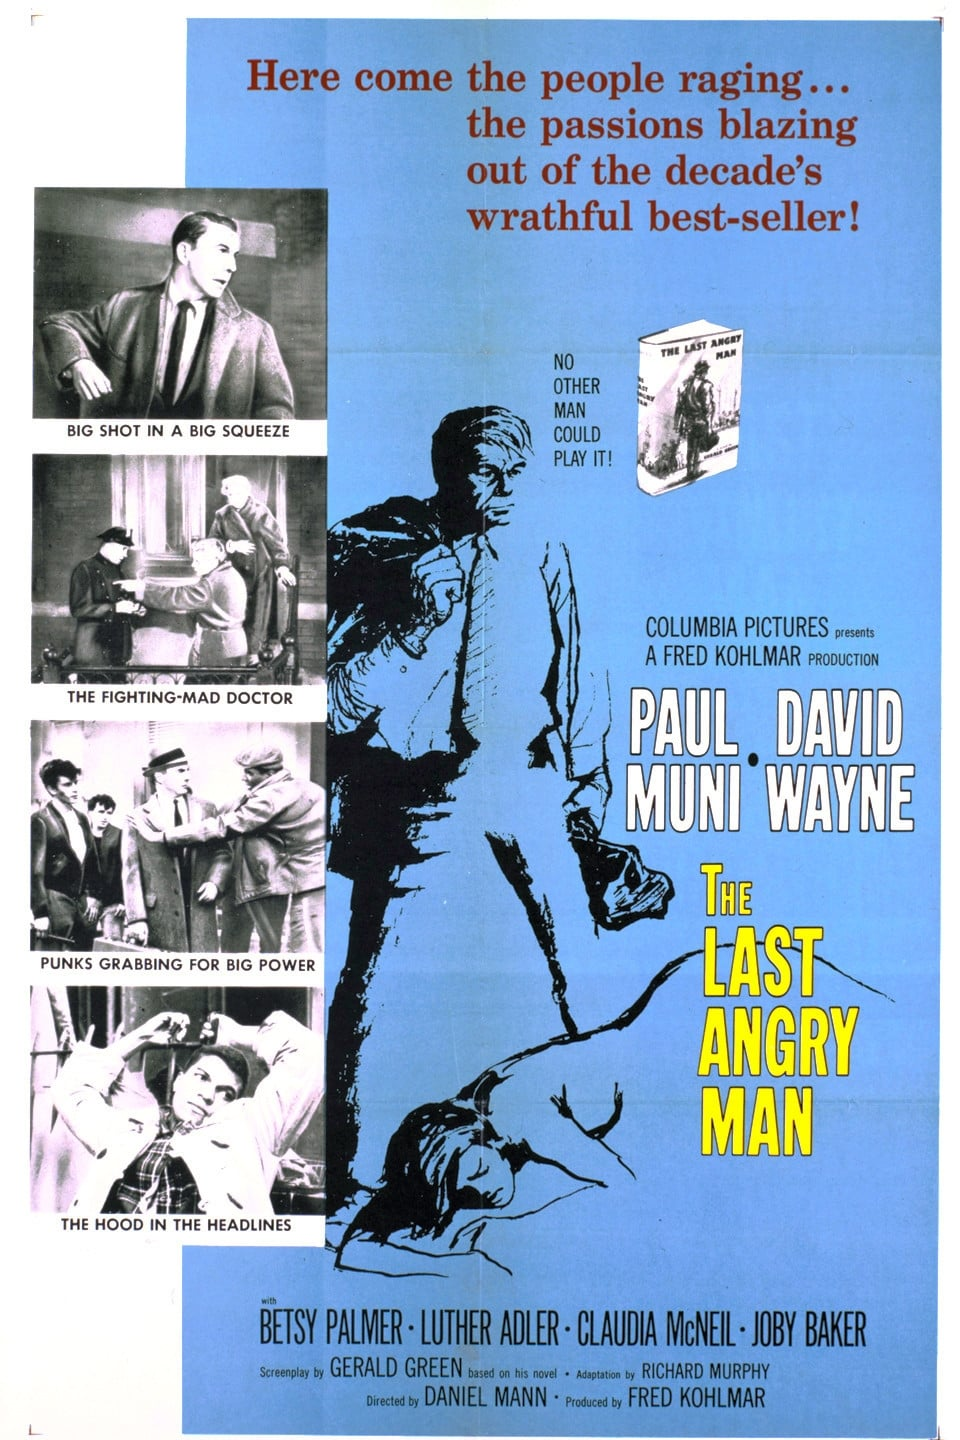 The Last Angry Man (1959)